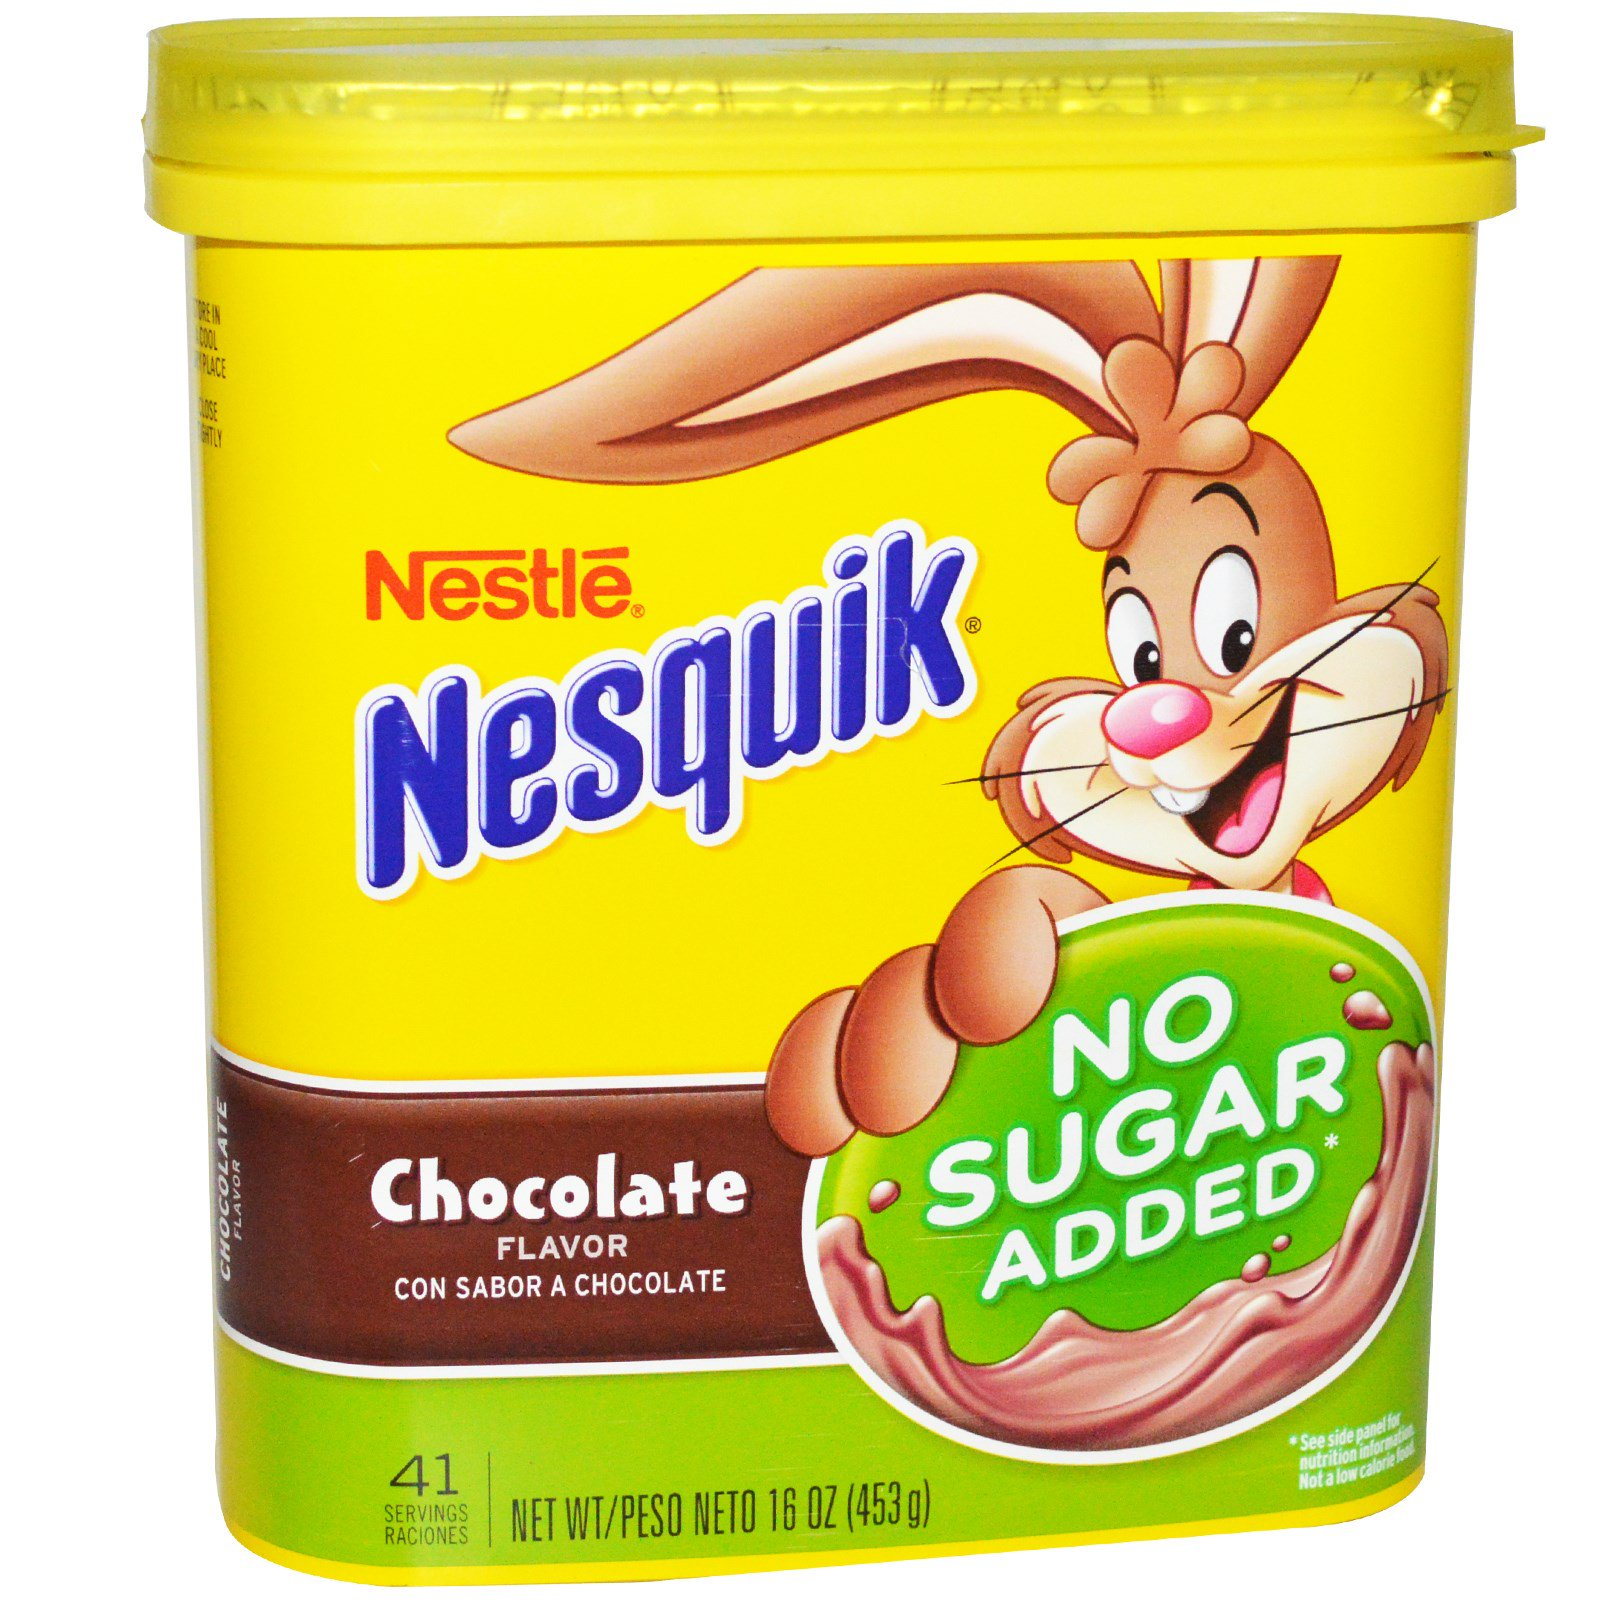 Nesquik, Nestle, Chocolate Flavor, No Sugar Added, 16 oz (pack of 1)